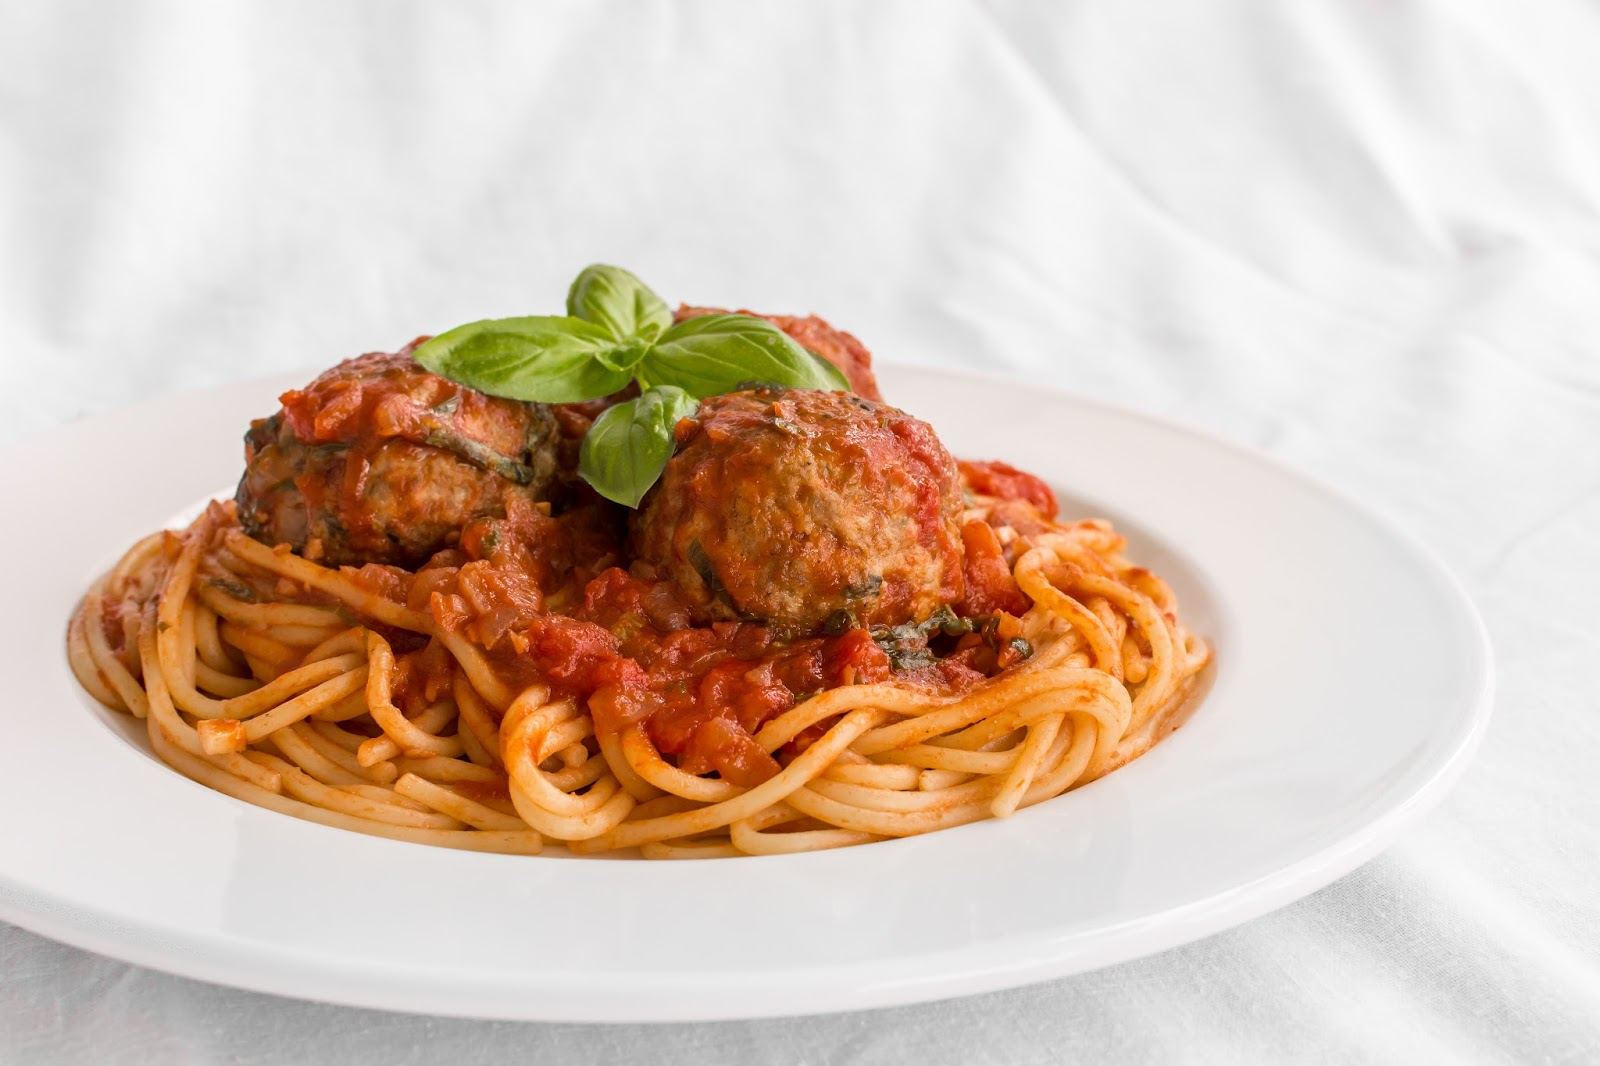 All Food Considered: Spaghetti and Meatballs